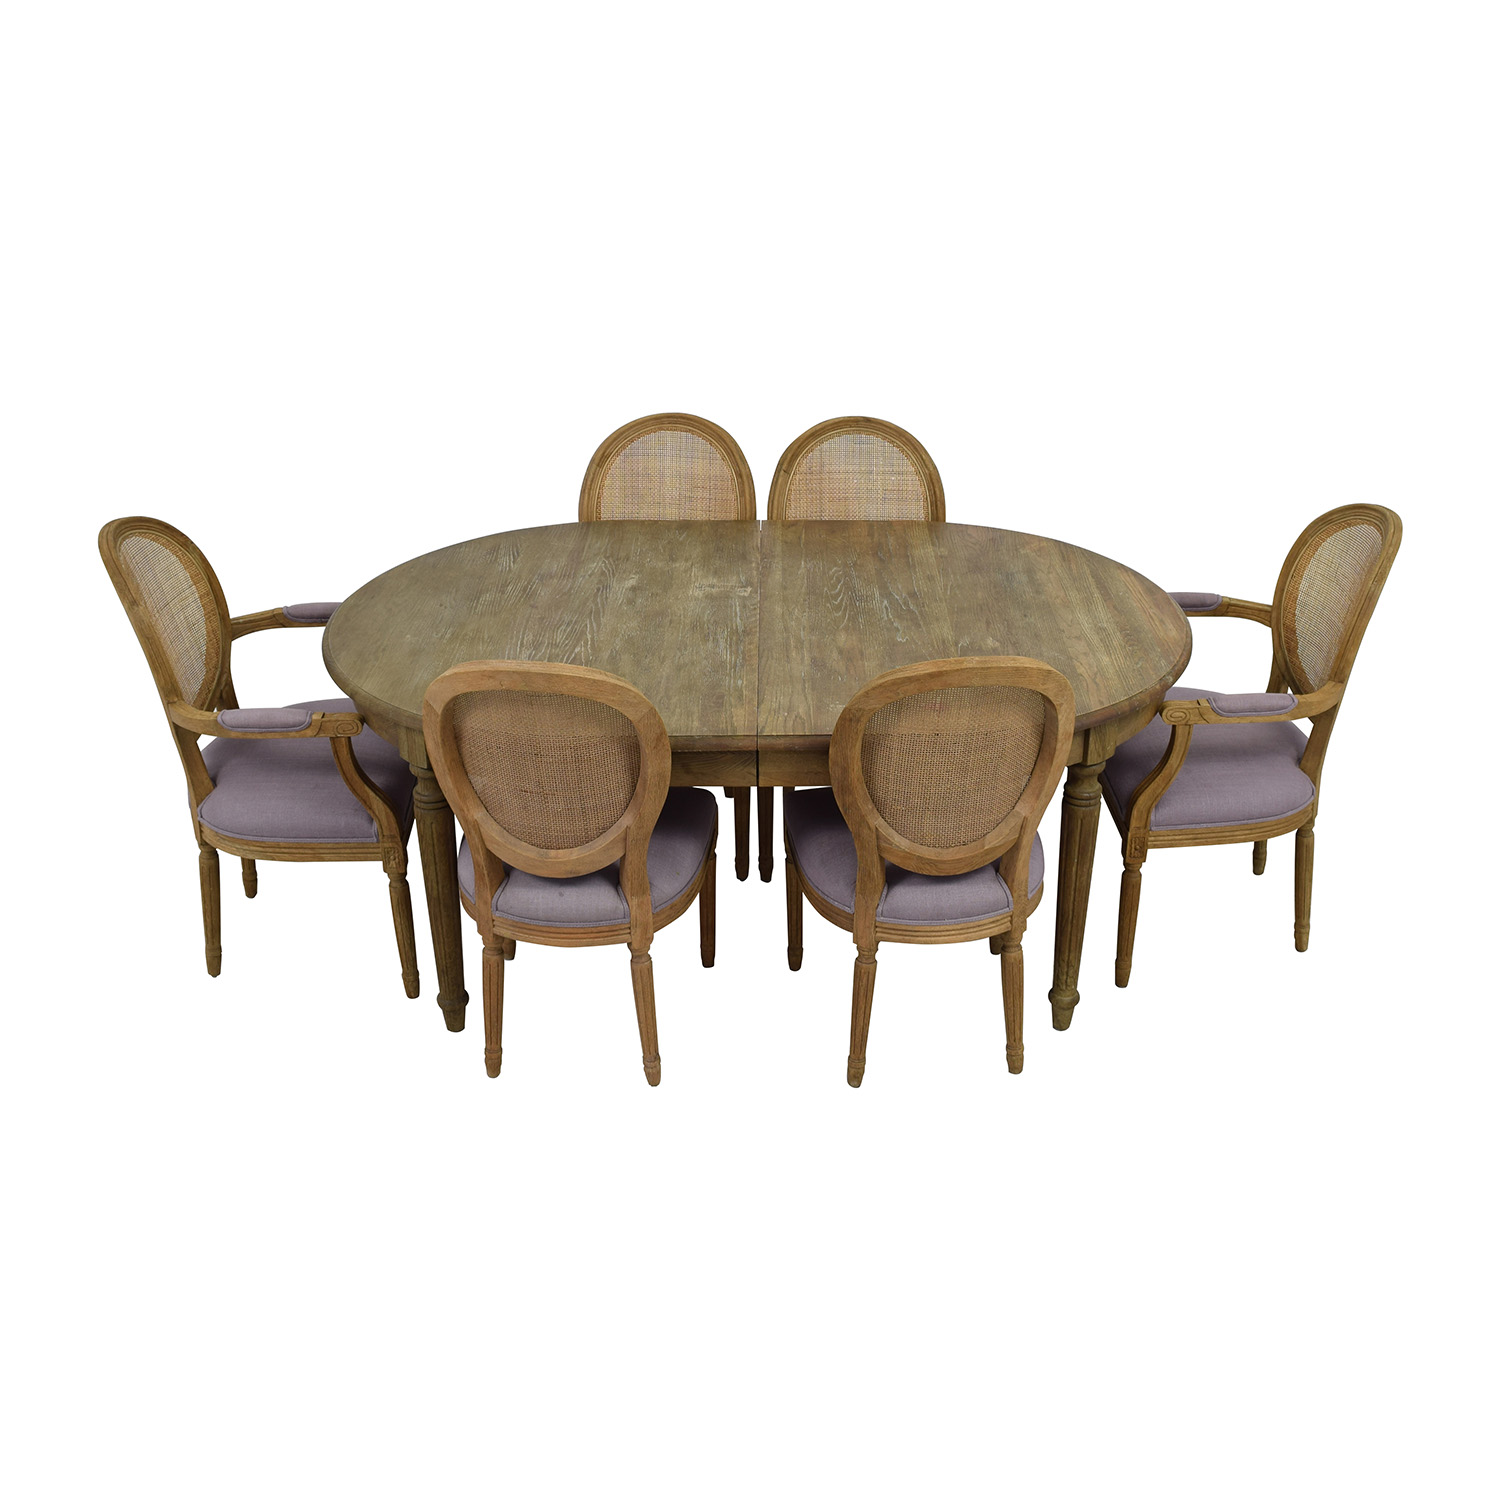 Restoration Hardware Restoration Hardware Rustic Extended Table with Six Chairs price